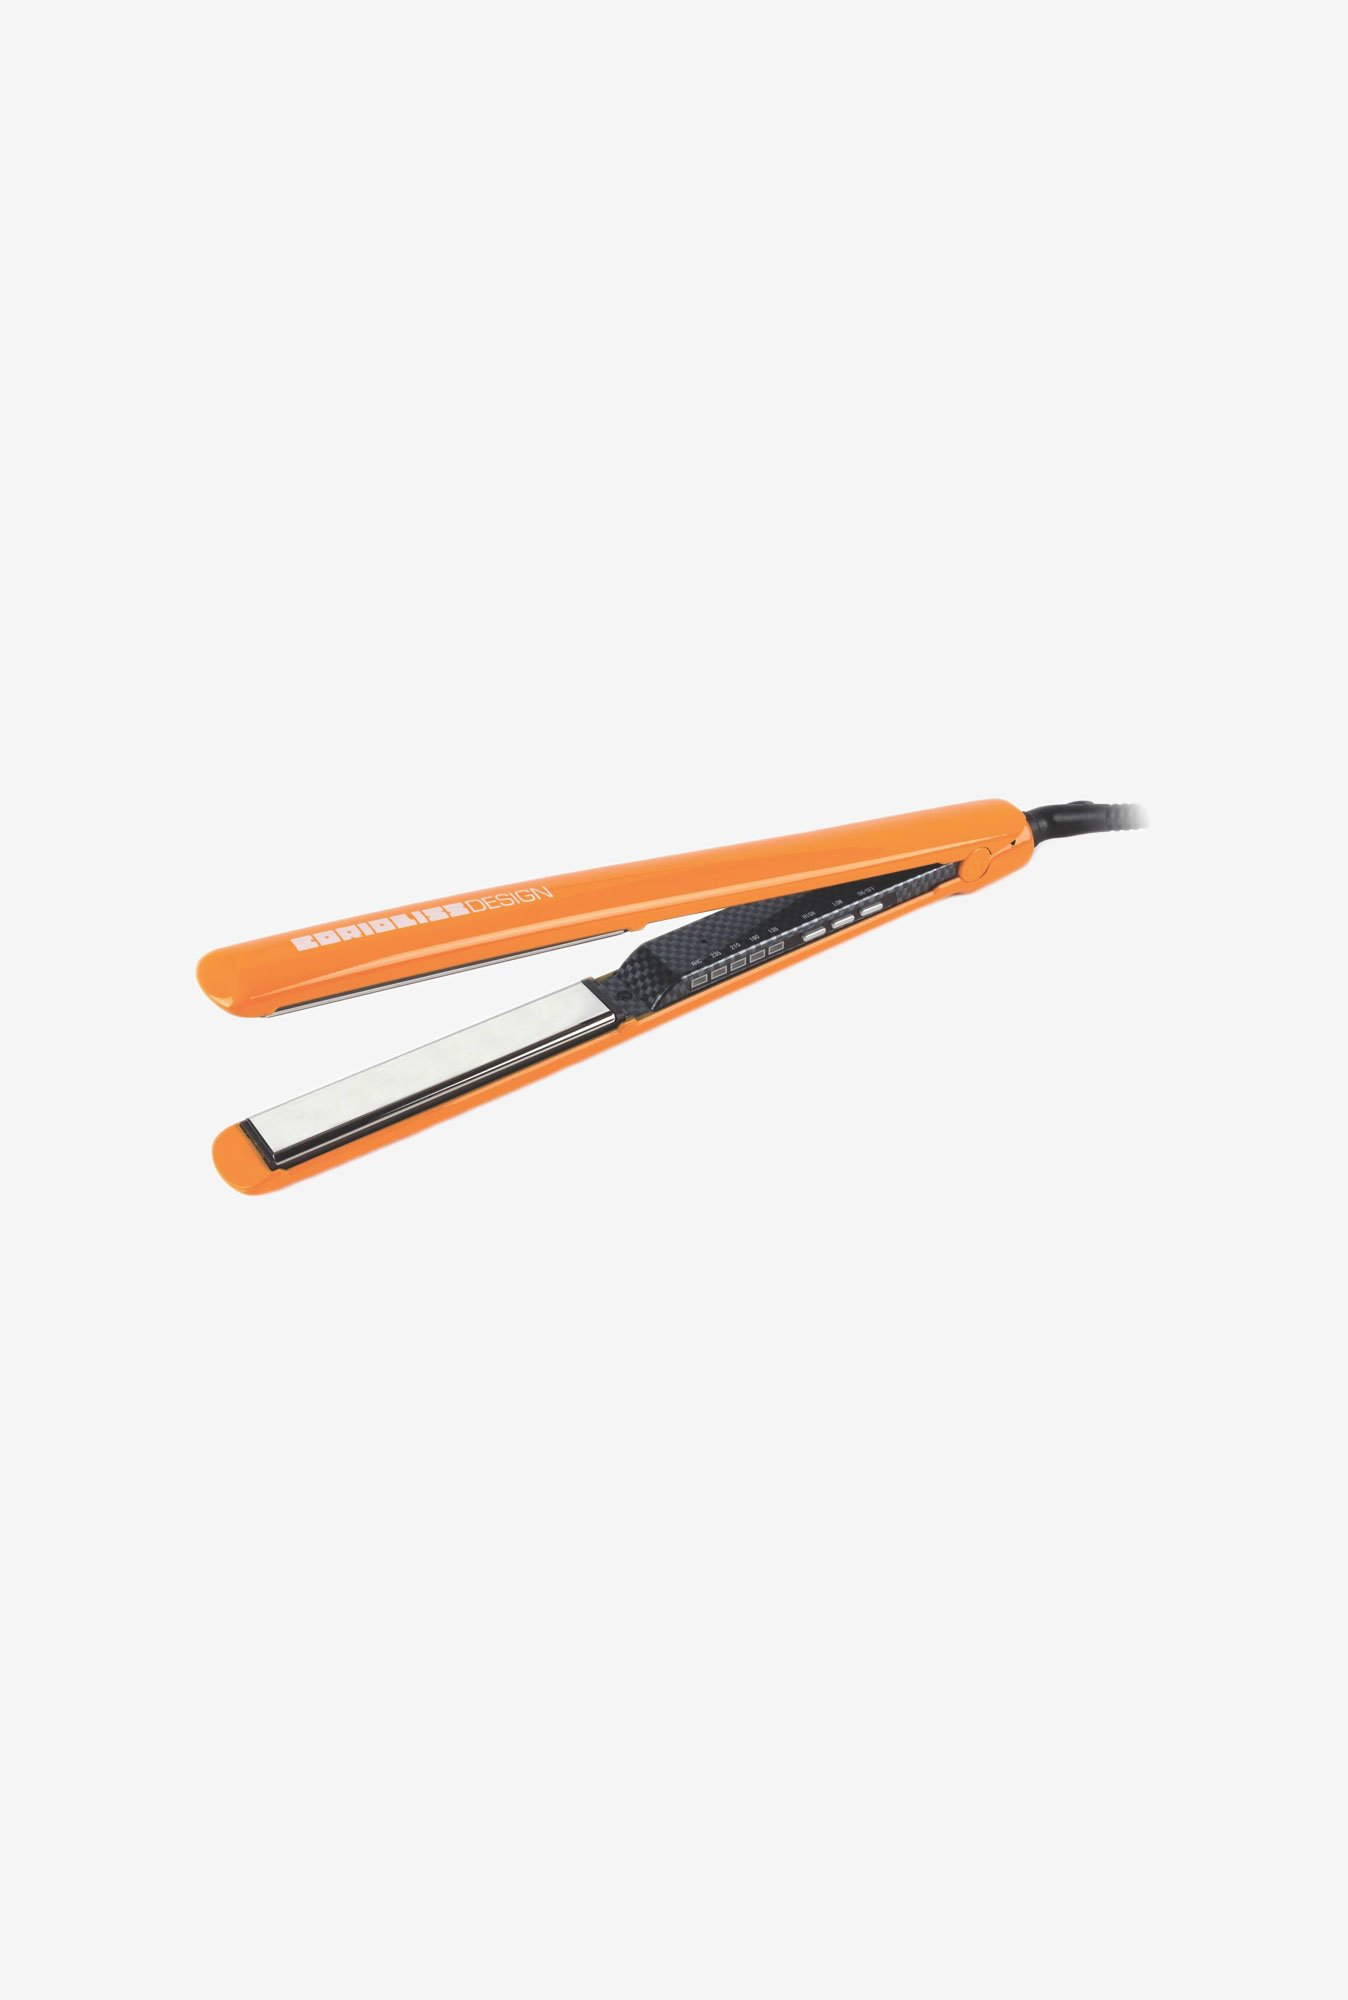 Corioliss C3 Professional Hair Straightener (Orange)